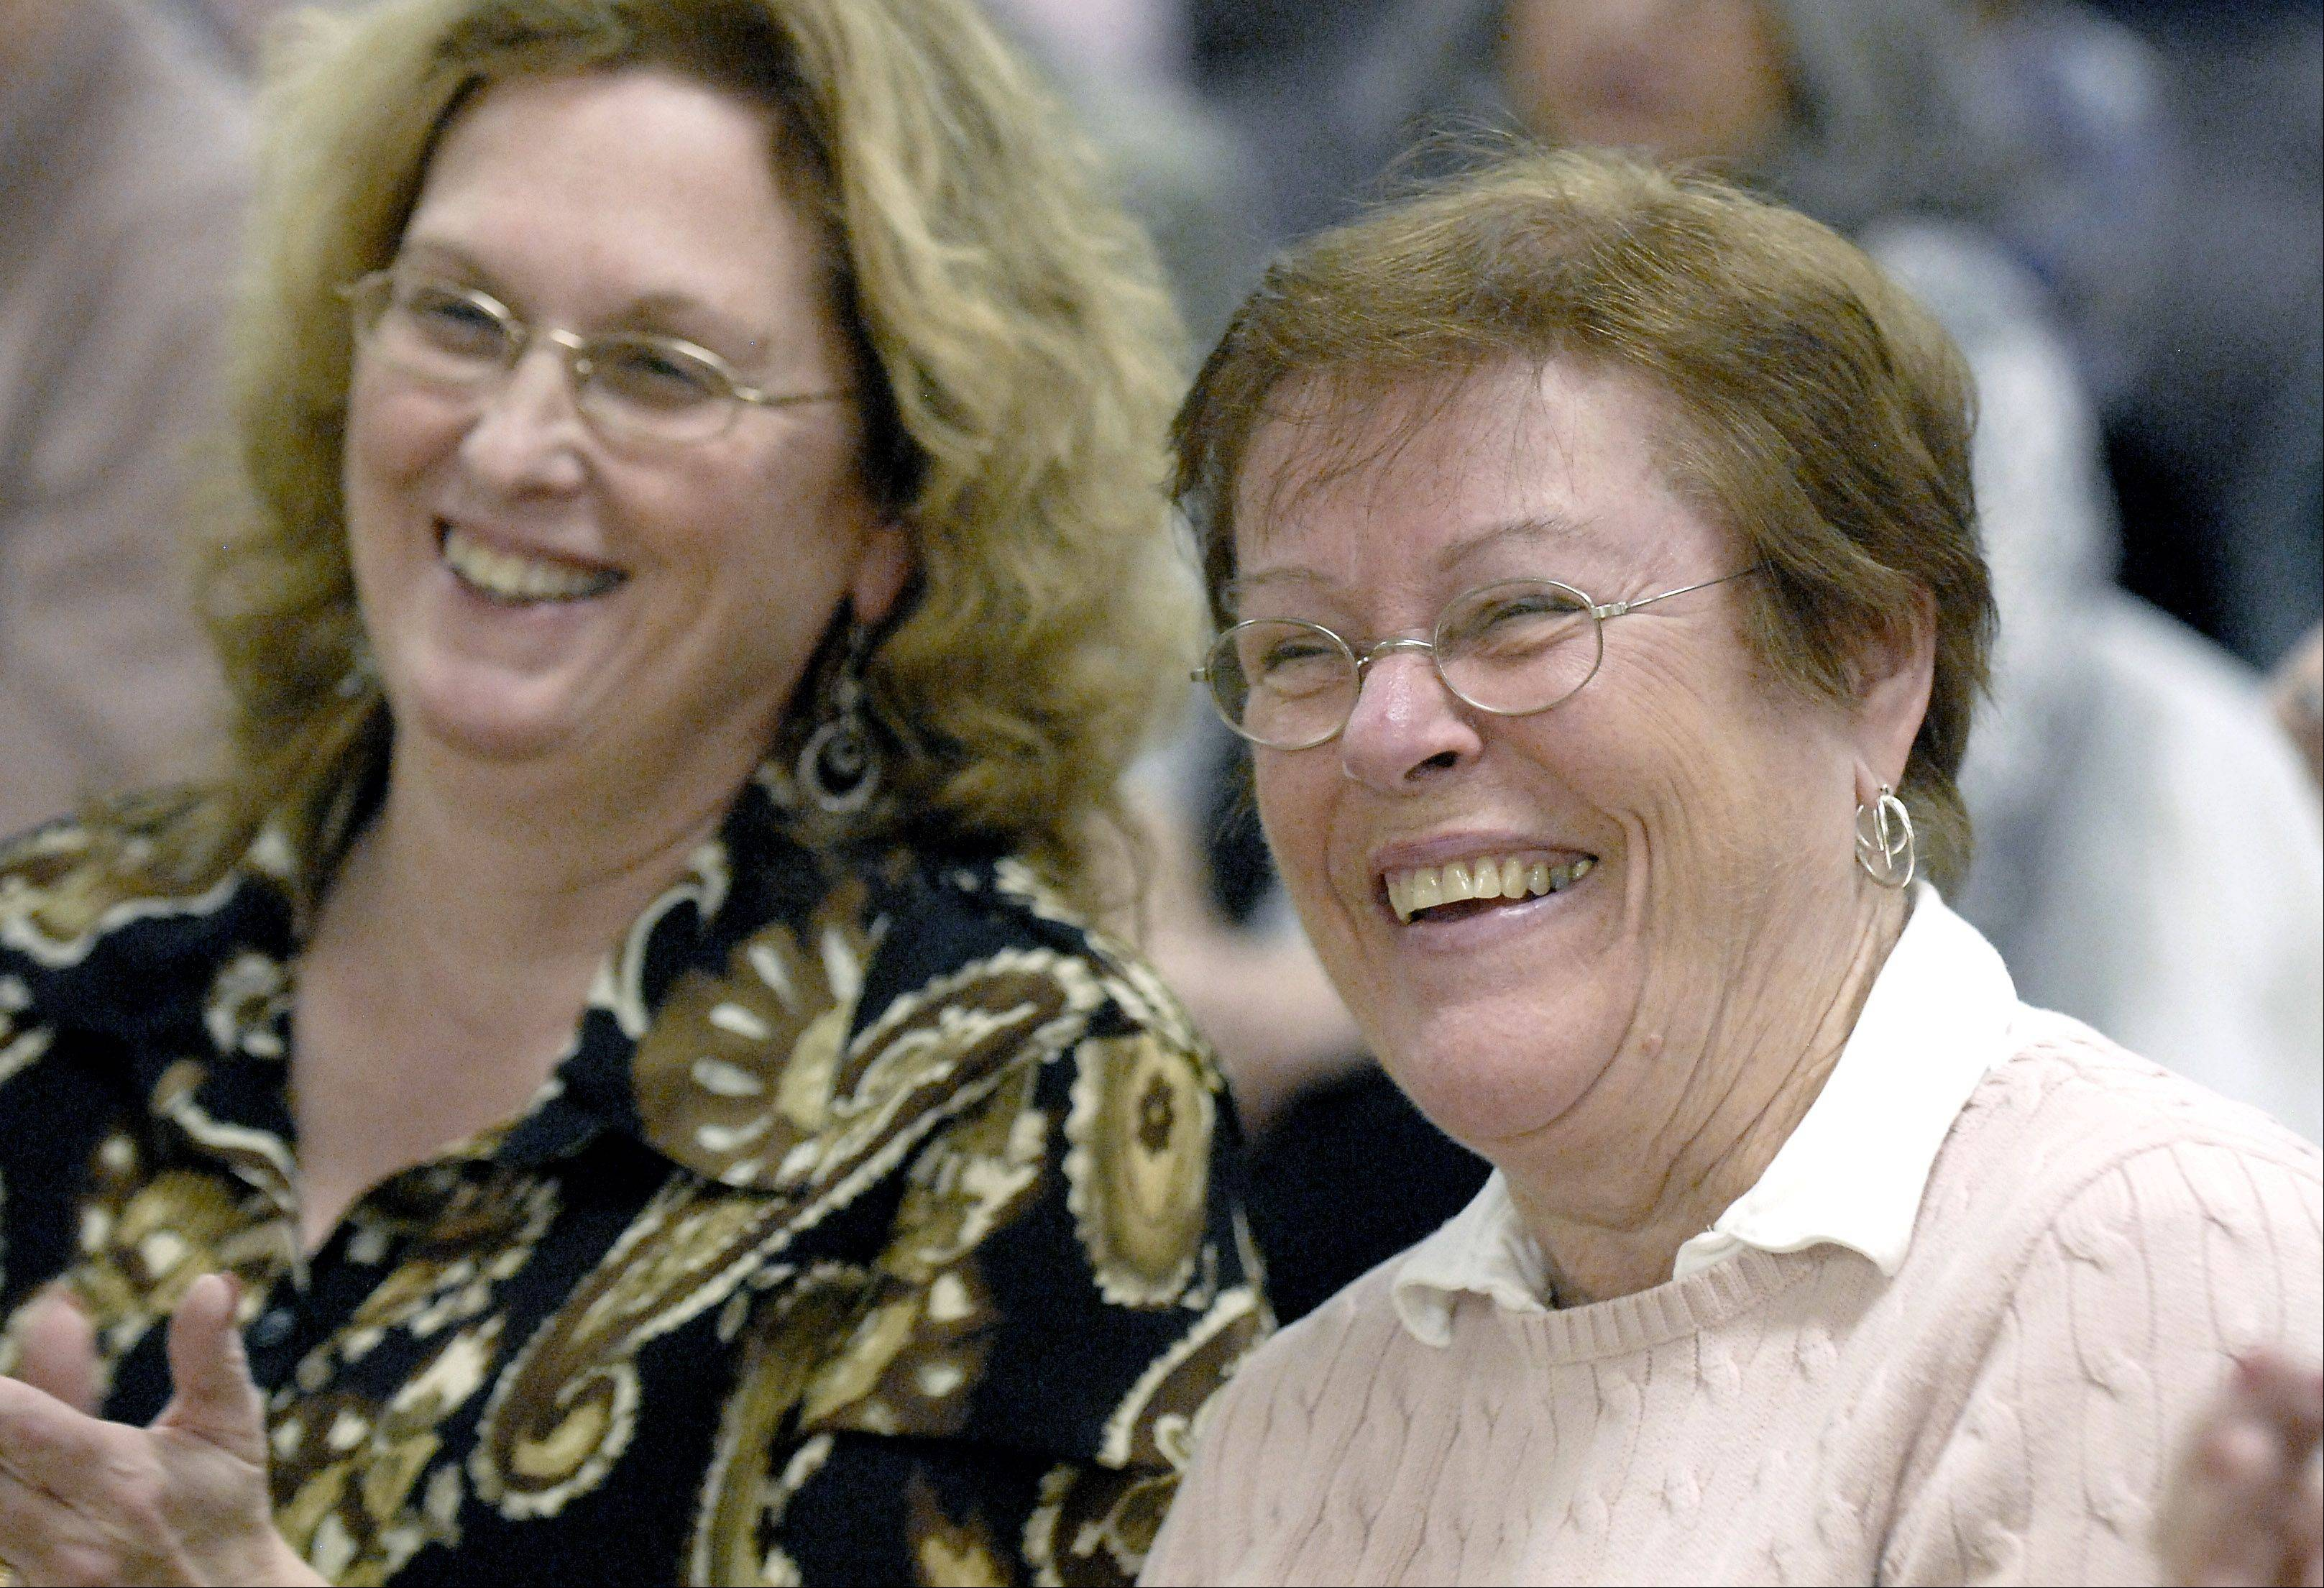 Phyllis Kmetz of Downers Grove, right, smiles as she finds out she won a cookbook by chef Jen Bucko Lamplough of Batavia during a cooking demonstration by Lamplough at the Northern Illinois Food Bank. Kmetz is a volunteer at the food bank.